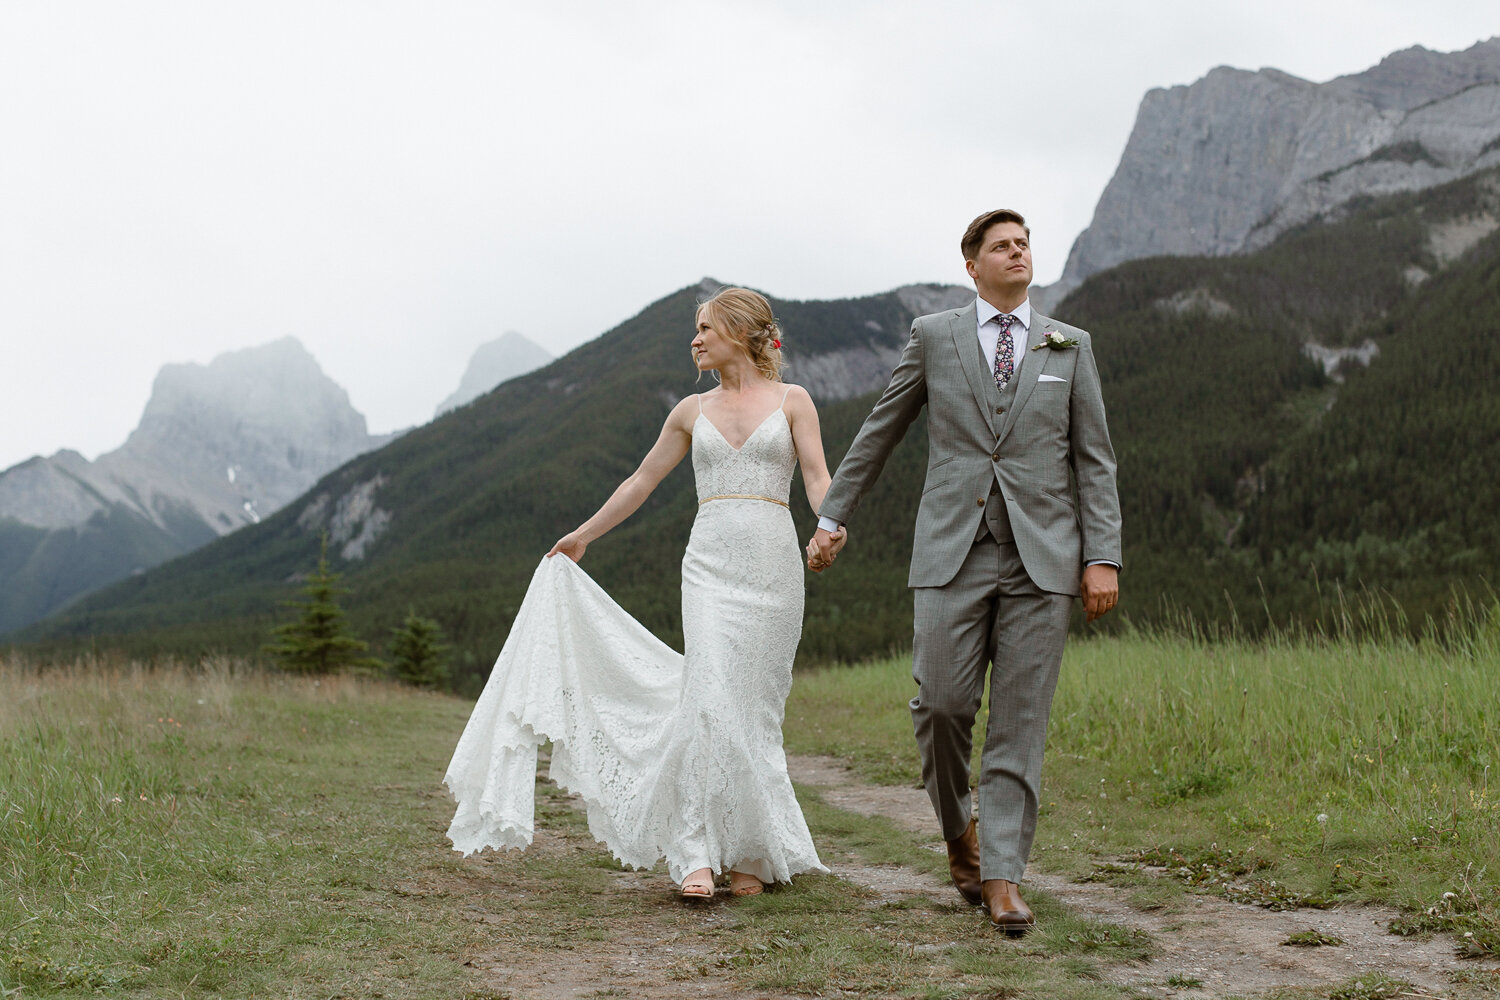 110-Canmore-Alberta-Real-Wedding-Best-Wedding-Photographers-189.JPG